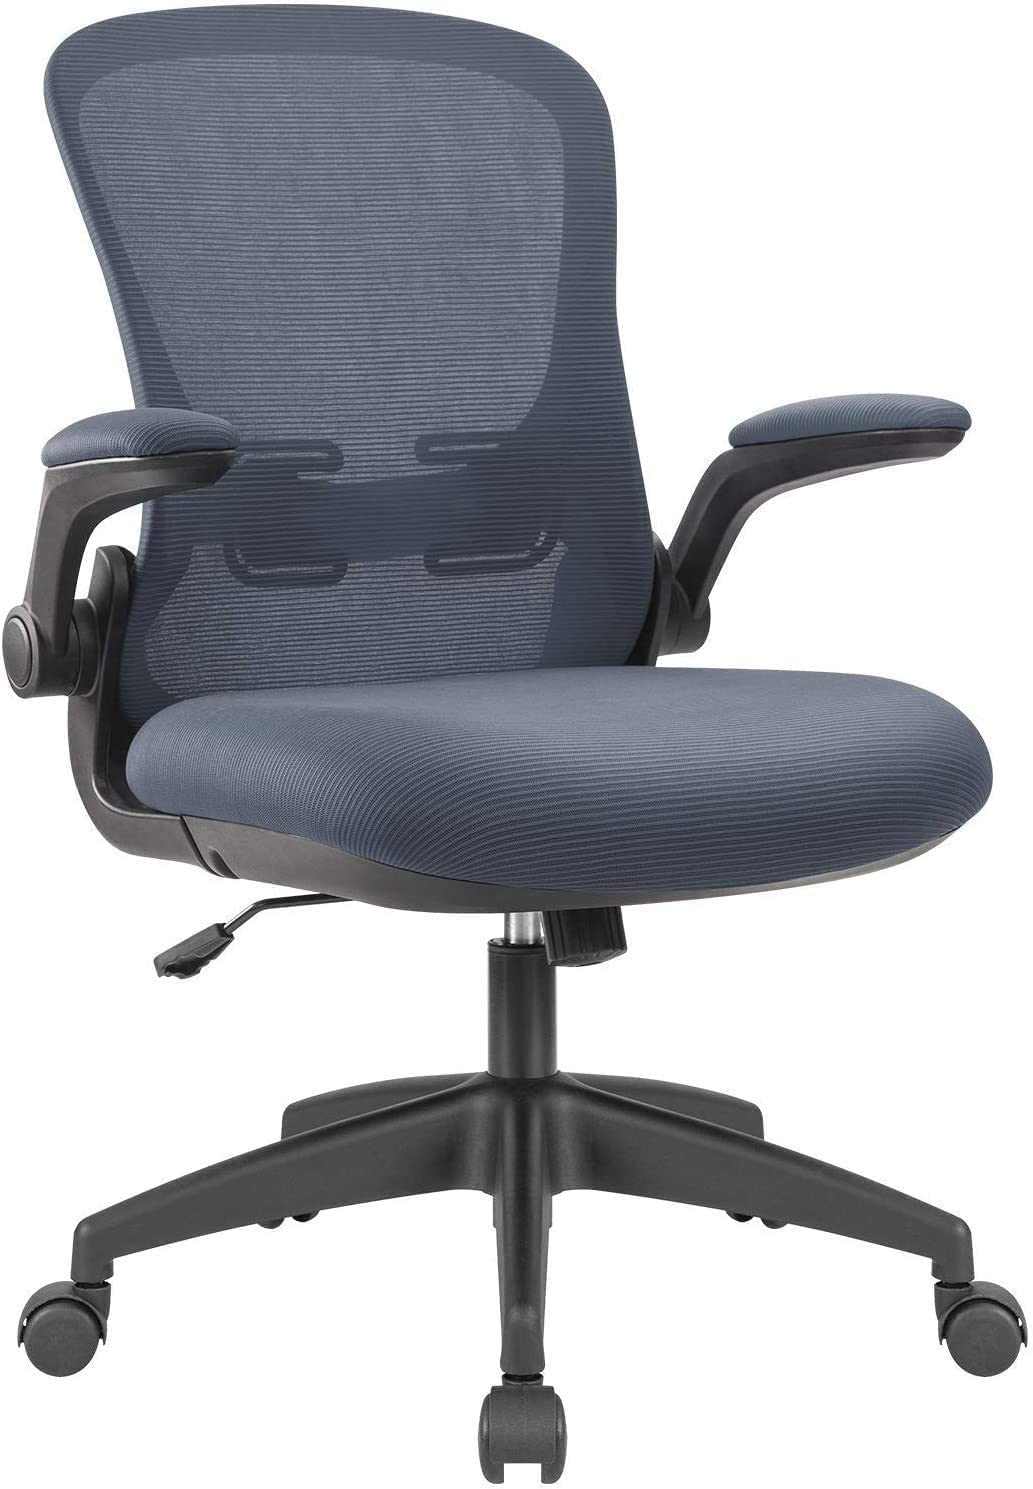 Home Office Chair Desk